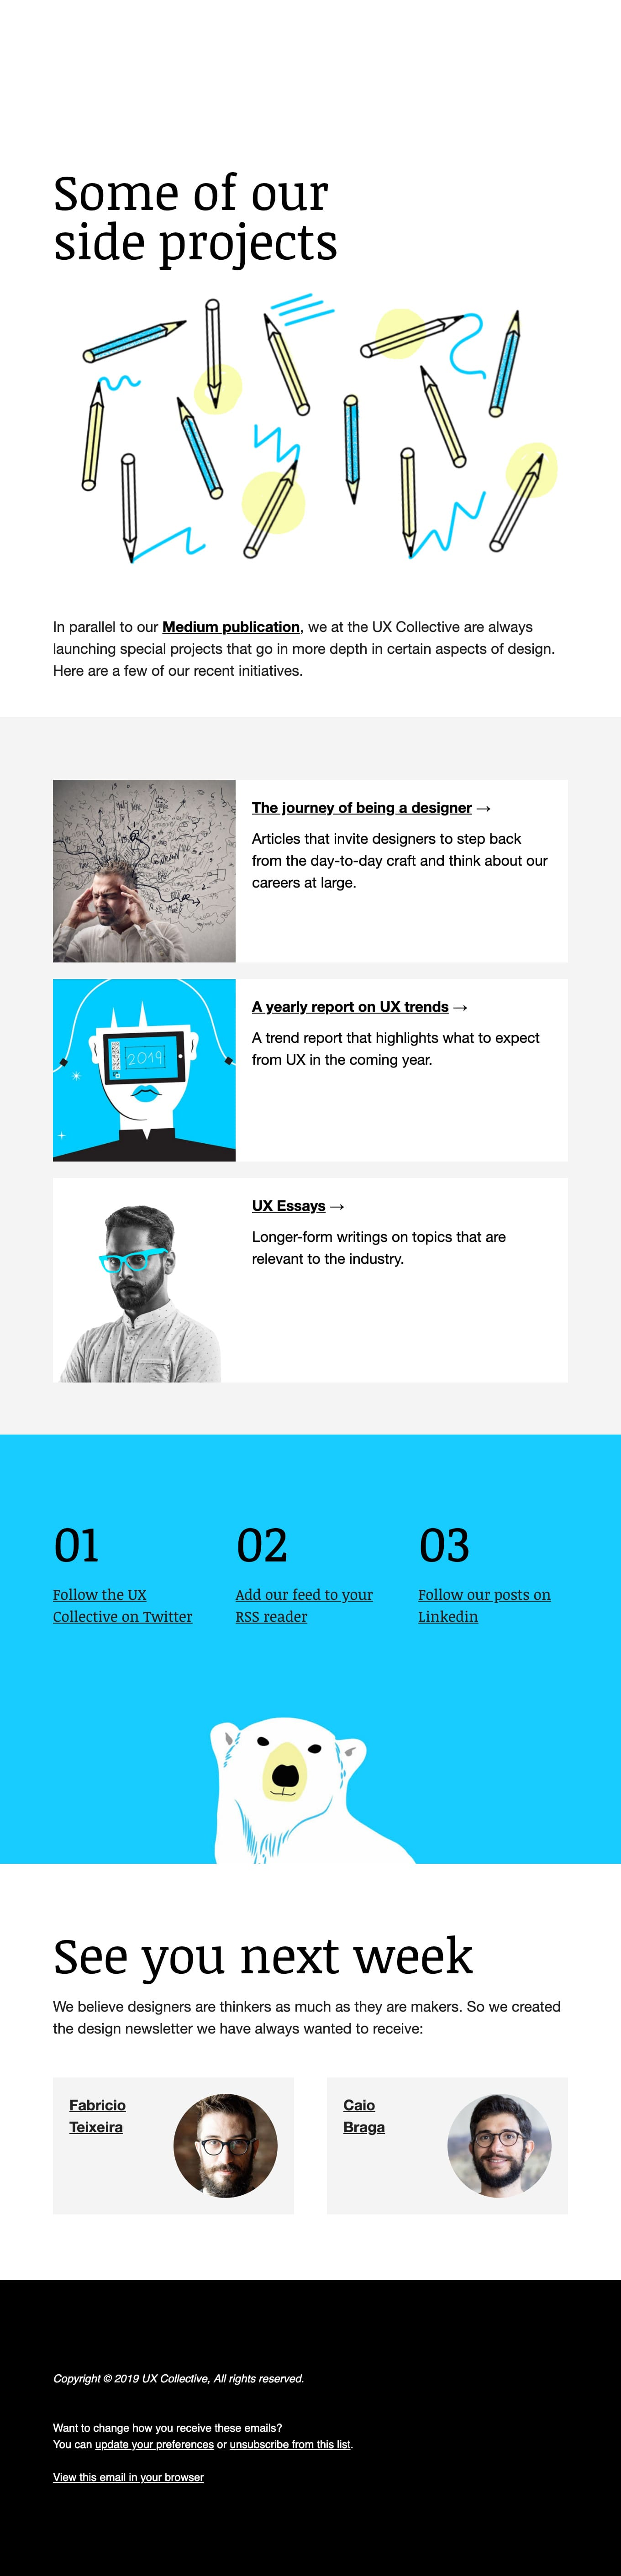 3 UX projects to check out Email Screenshot